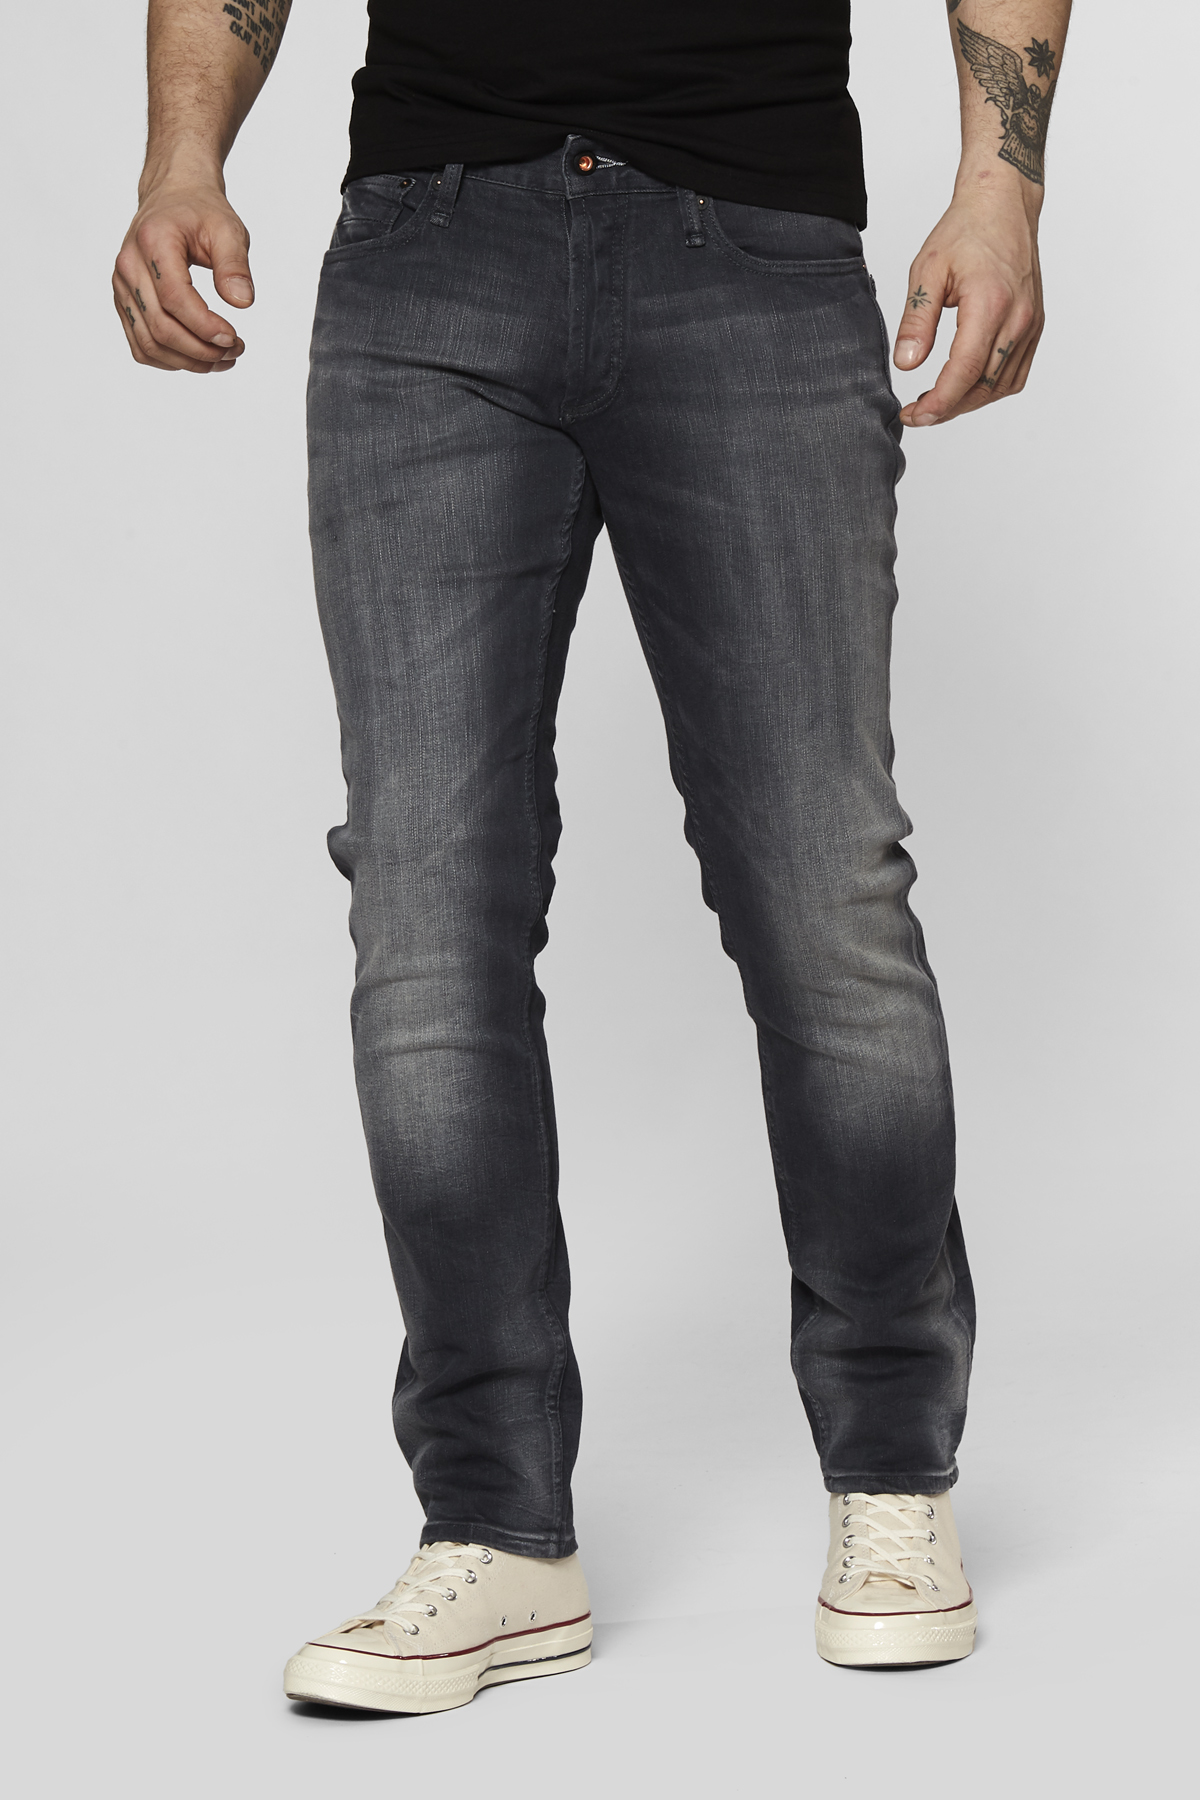 Hammer Athletic Fit Jeans - CAR